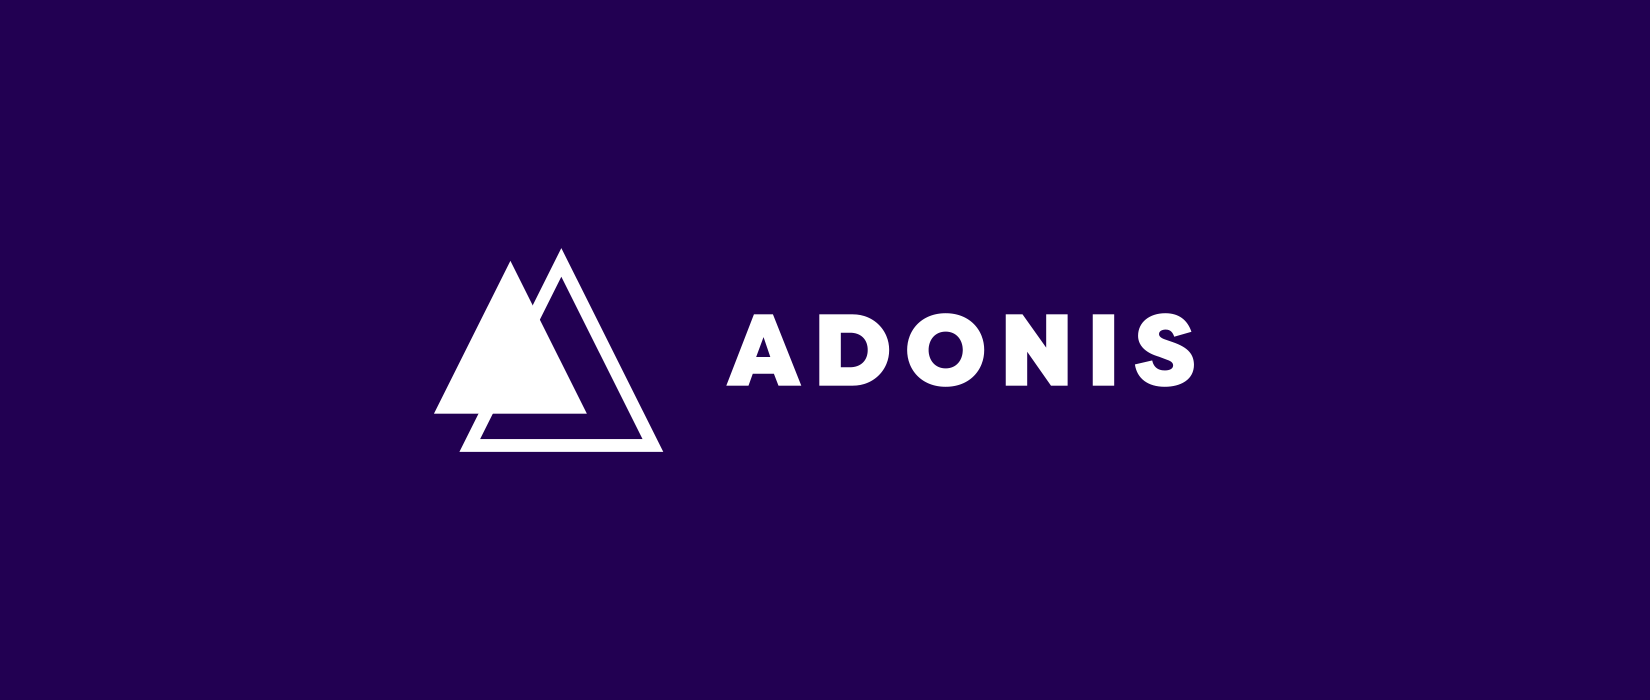 Adonis 4 Tutorial - Learn Adonis 4 in this Crash Course